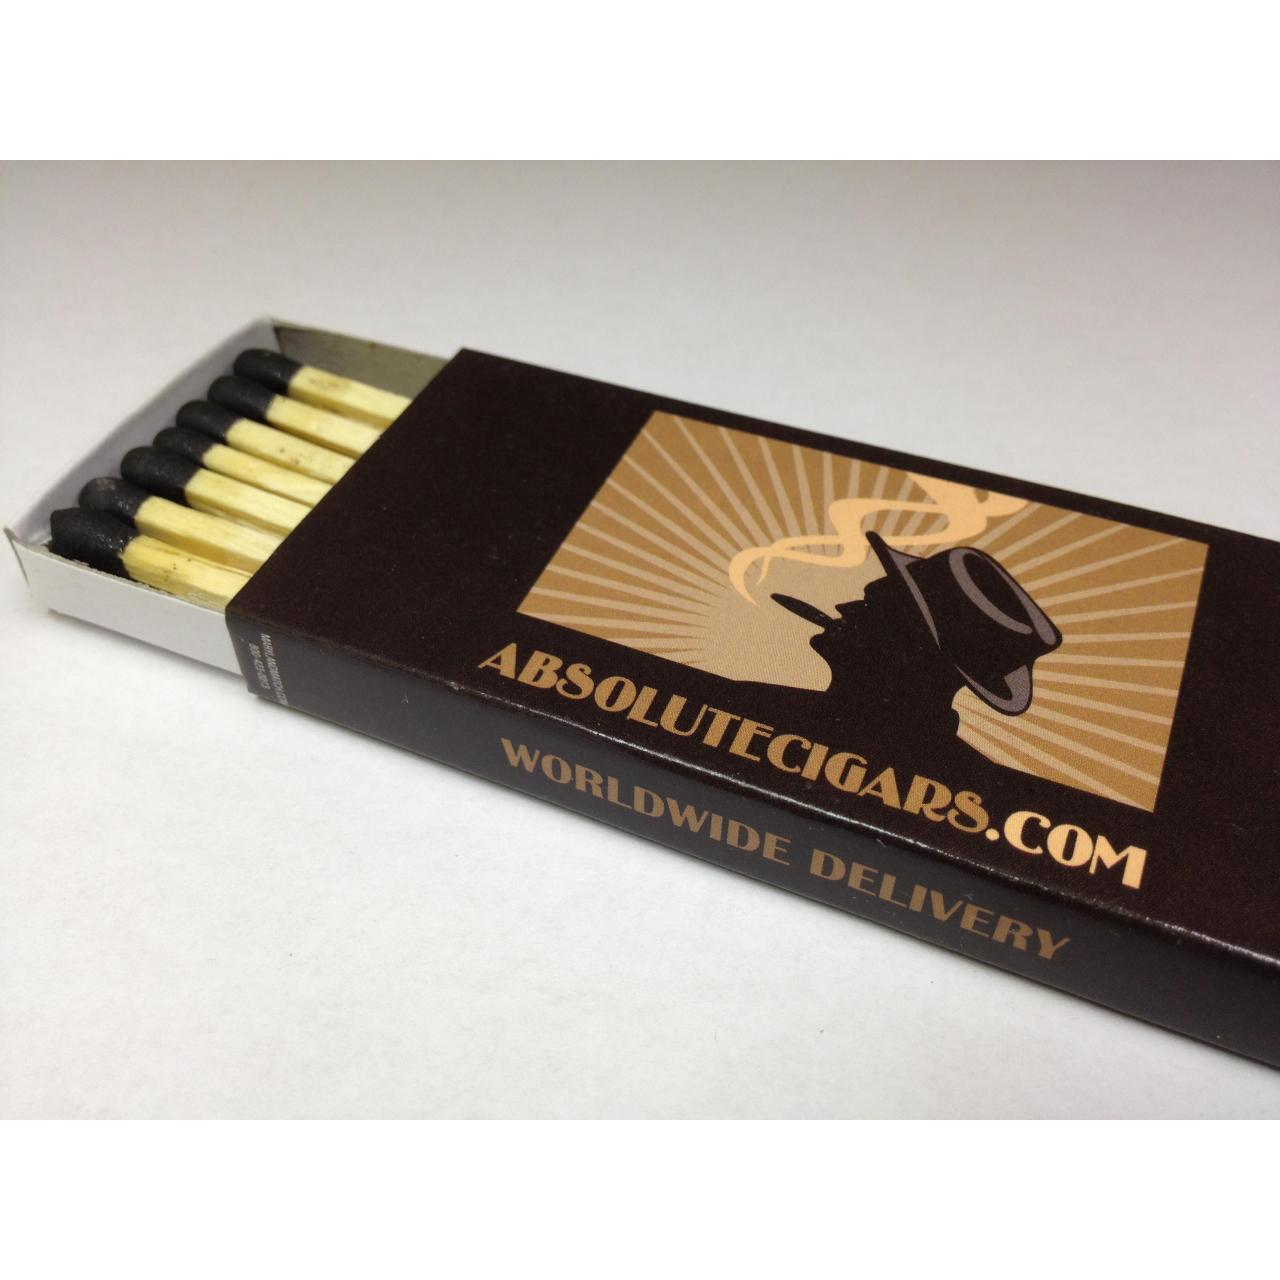 China Classic Cigar Matches - Case of 25 Boxes (375 Matches) wholesale